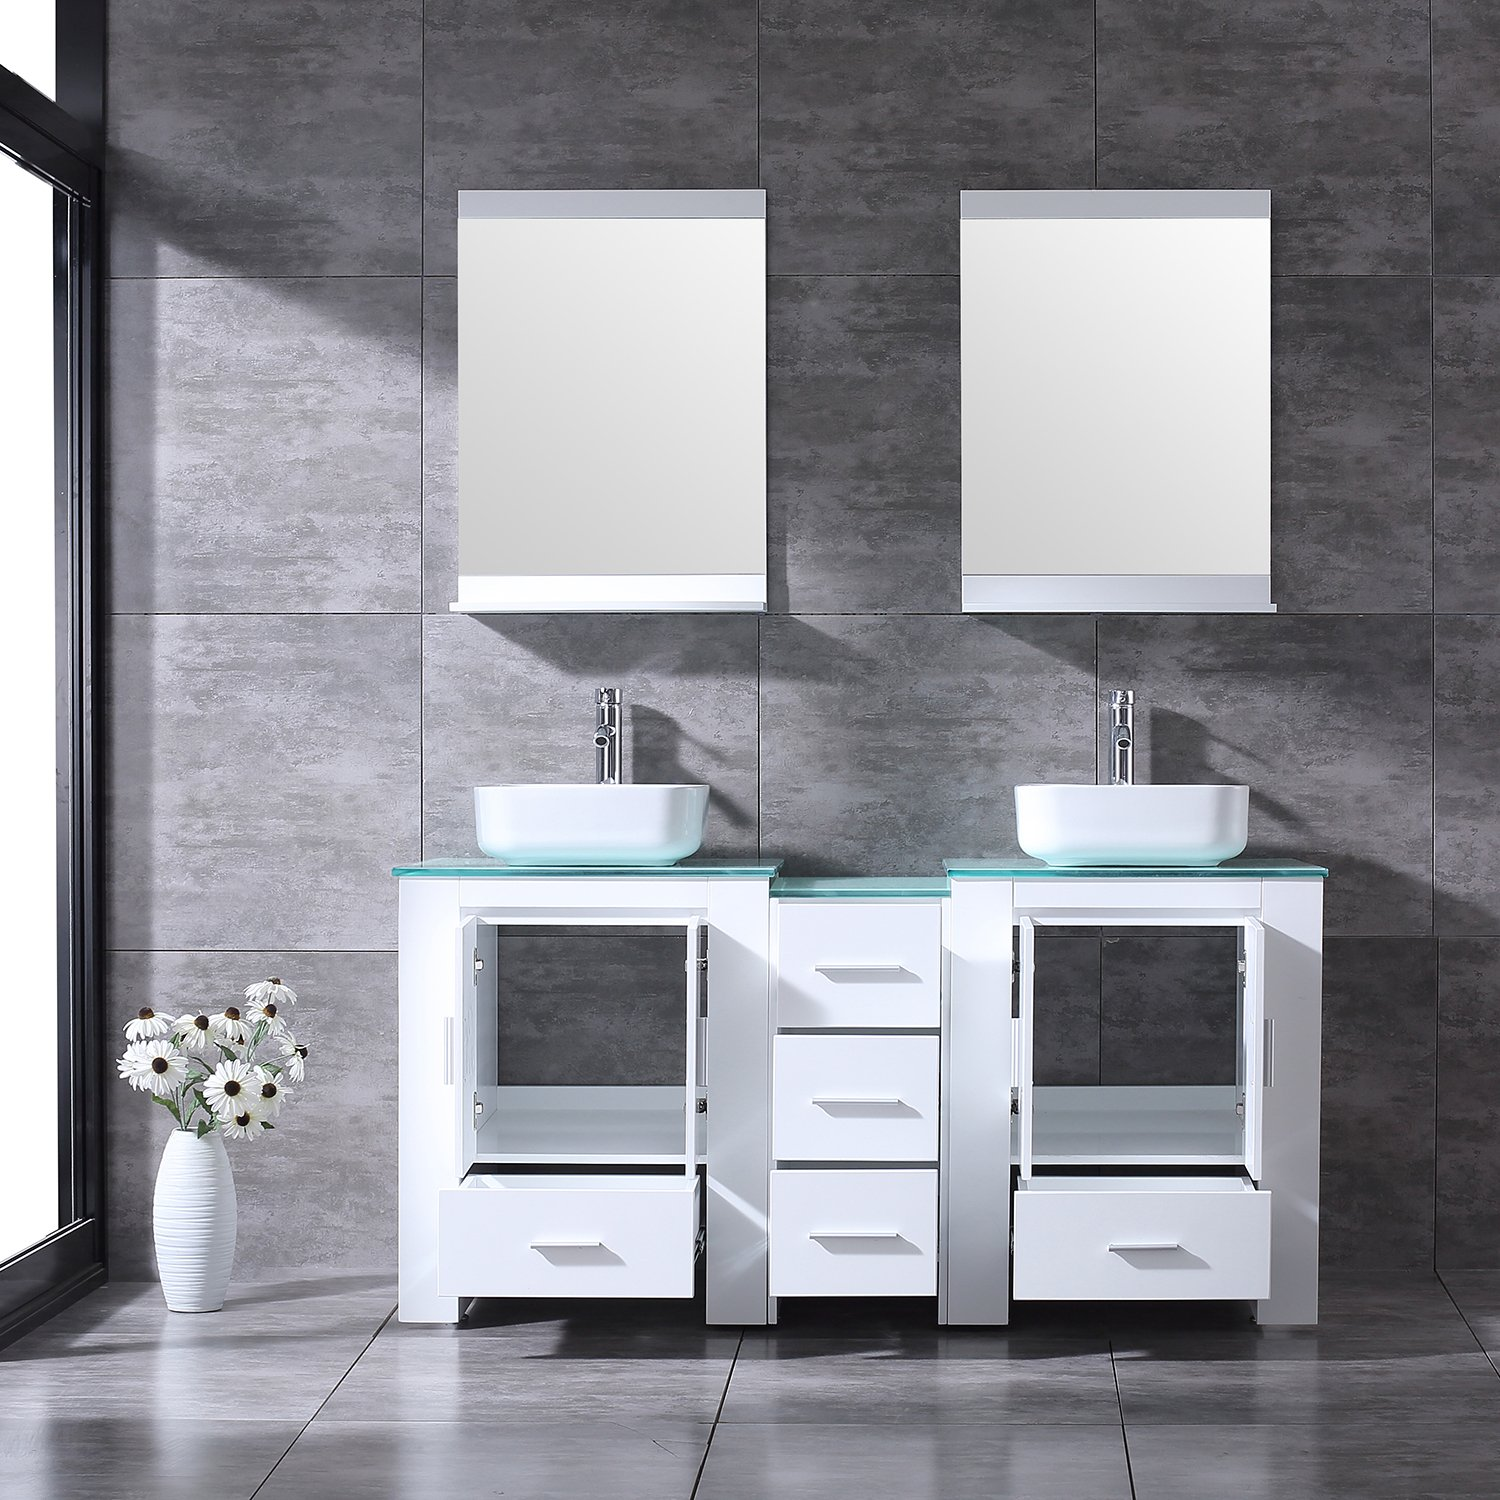 """BATHJOY Luxury 60"""" White Bathroom Double Wood Vanity Cabinet with Square Ceramic Vessel Sink and Mirrors Faucet Drain Combo by BATHJOY (Image #4)"""